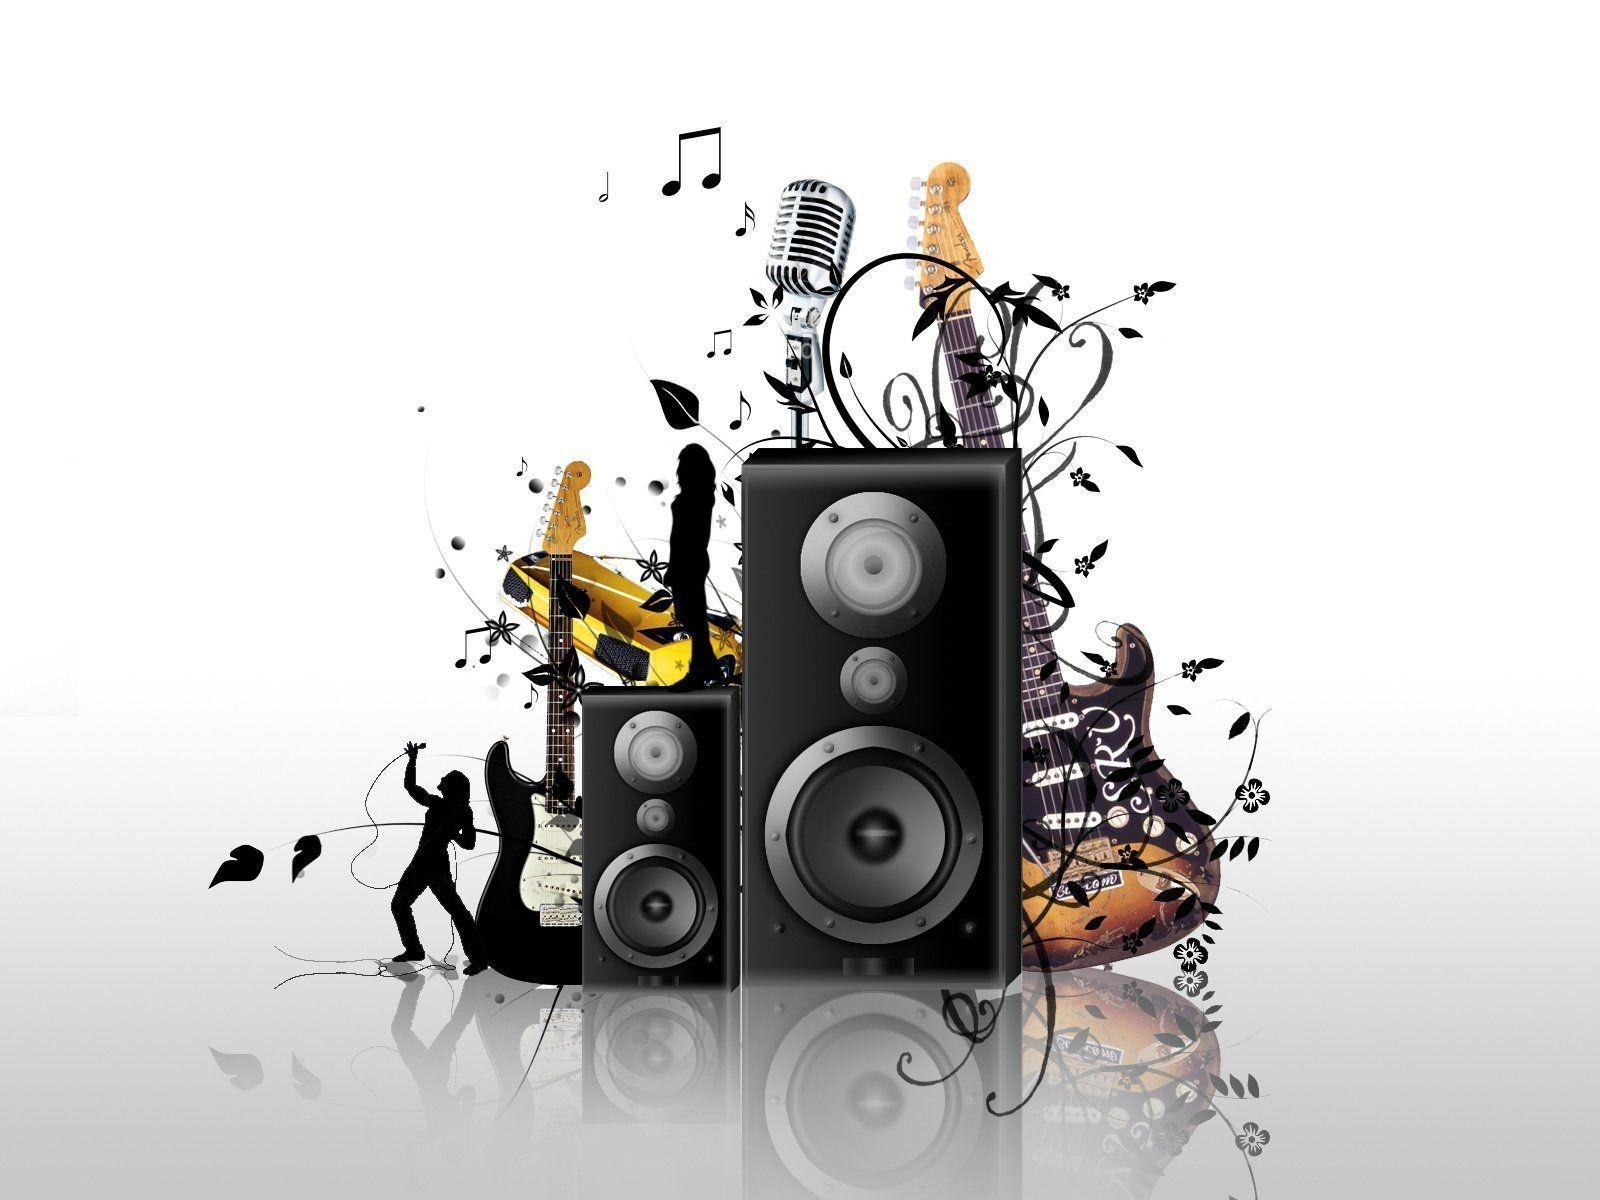 cool music backgrounds wallpapers - wallpaper cave